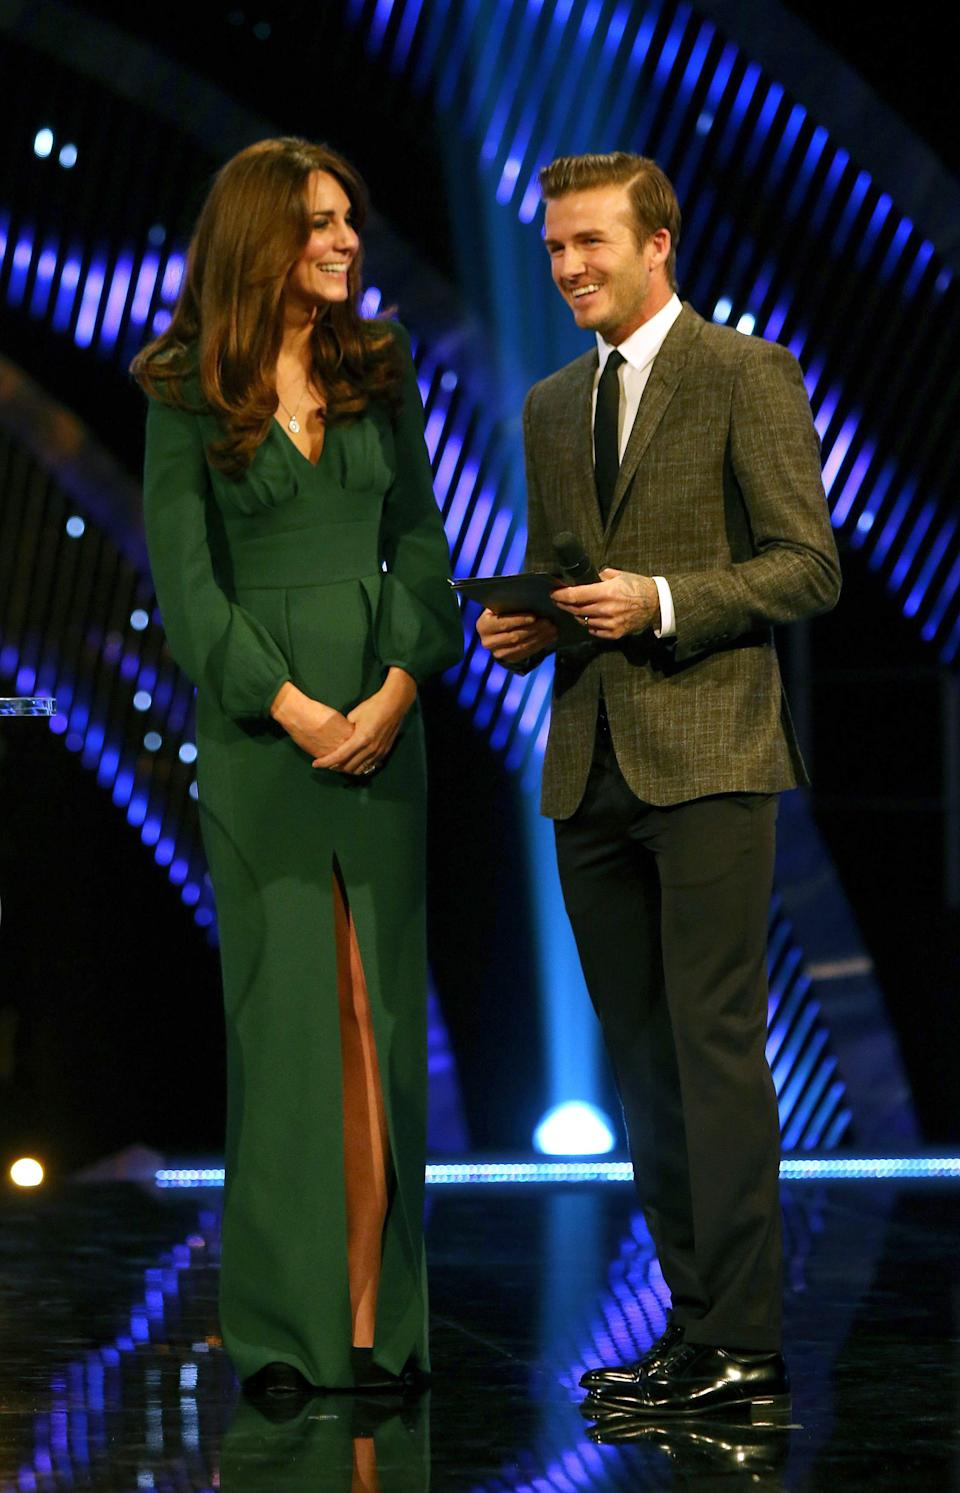 Kate, the Duchess of Cambridge smiles as she chats with soccer player David Beckham during the BBC Sports Personality of the Year Awards 2012 in London, Sunday Dec. 16, 2012. (AP Photo/David Davies, PA) UNITED KINGDOM OUT: NO SALES: NO ARCHIVE